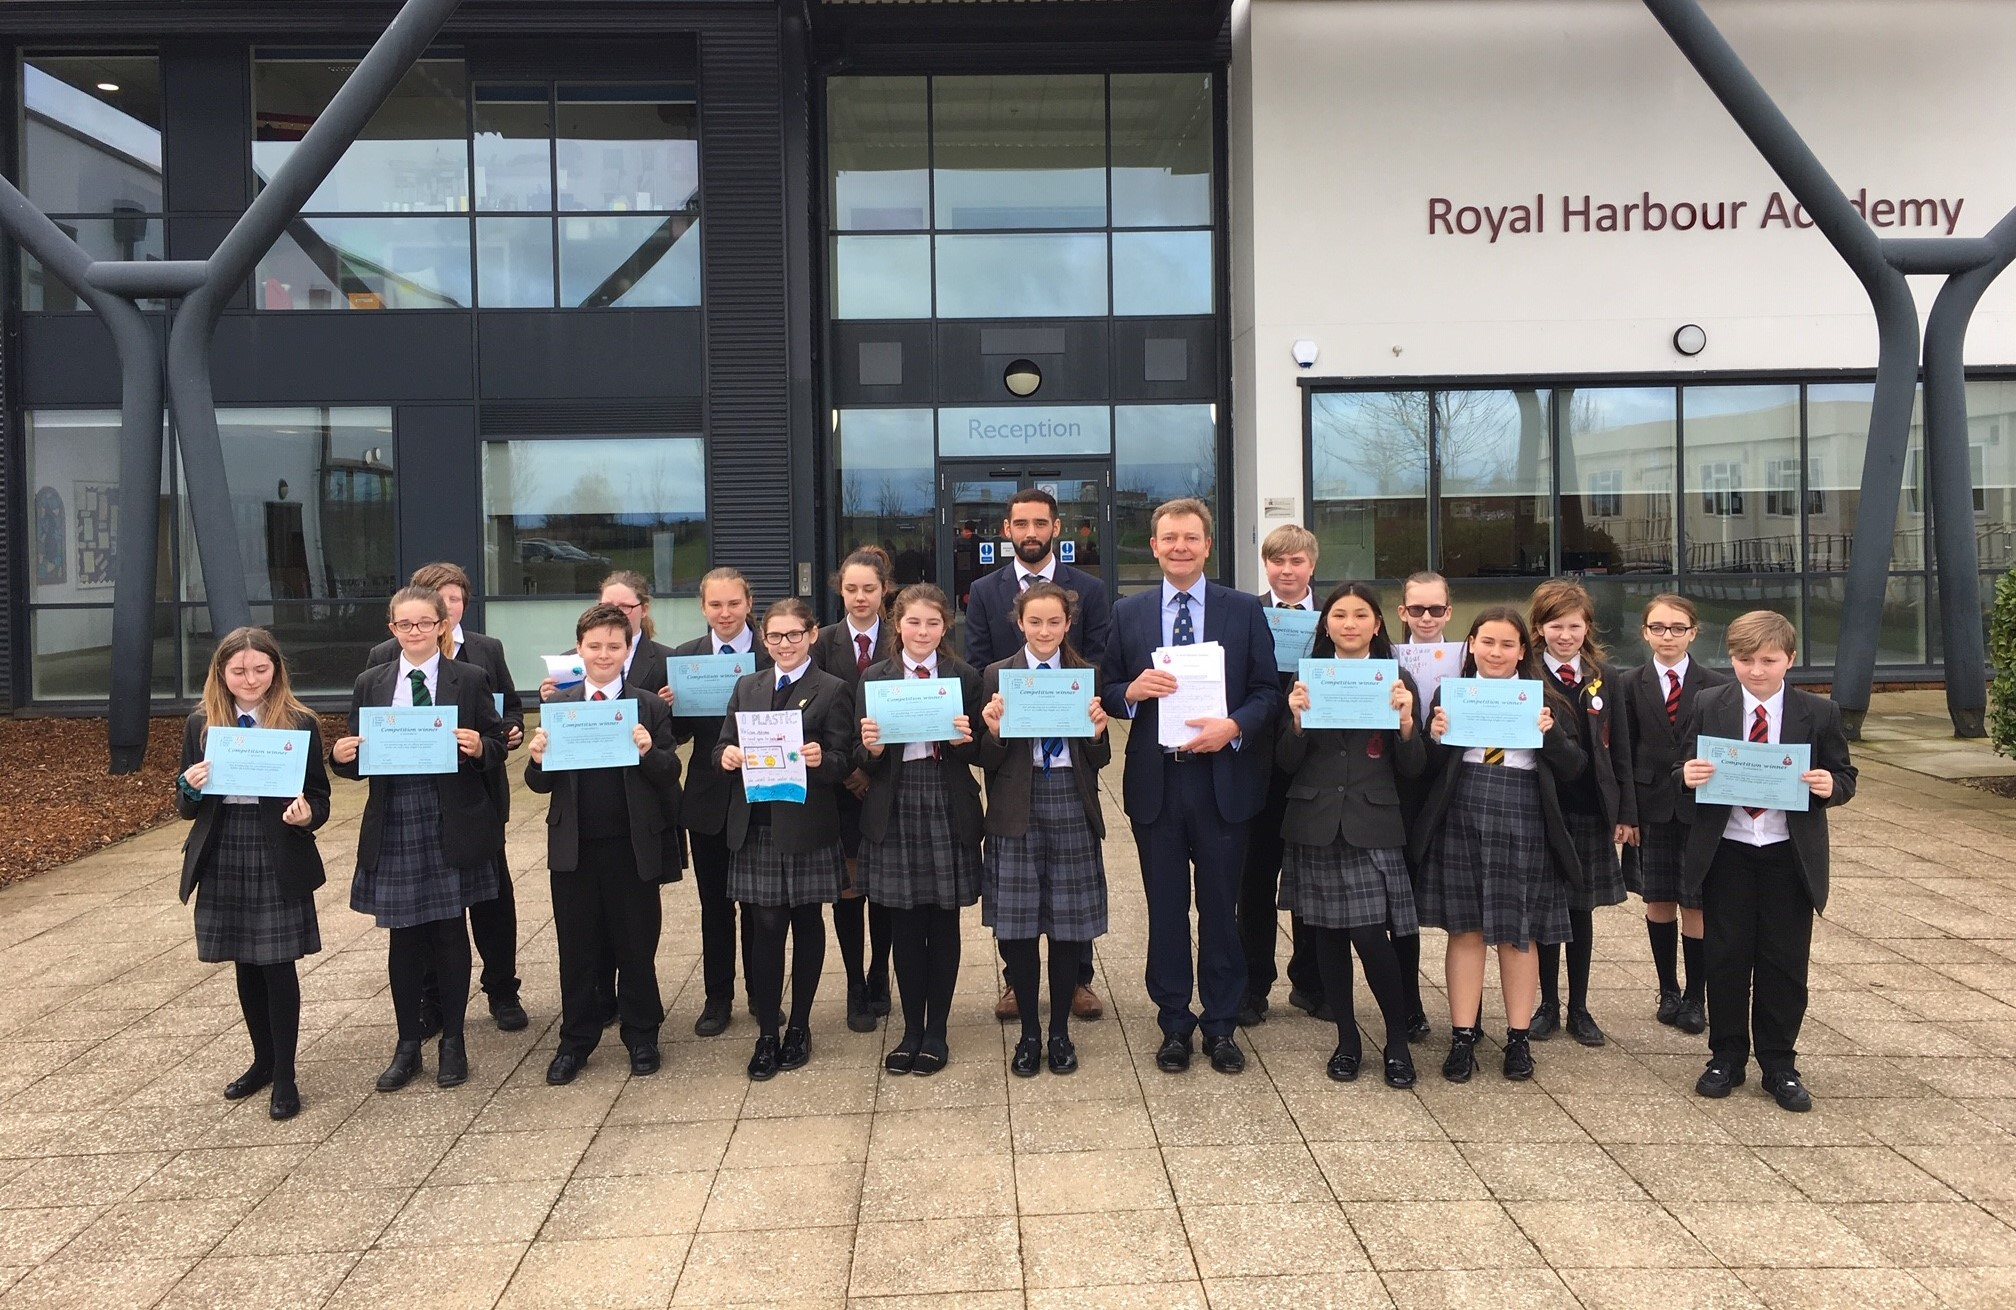 CM with The Royal Harbour Academy for Science Week Mar19.jpg